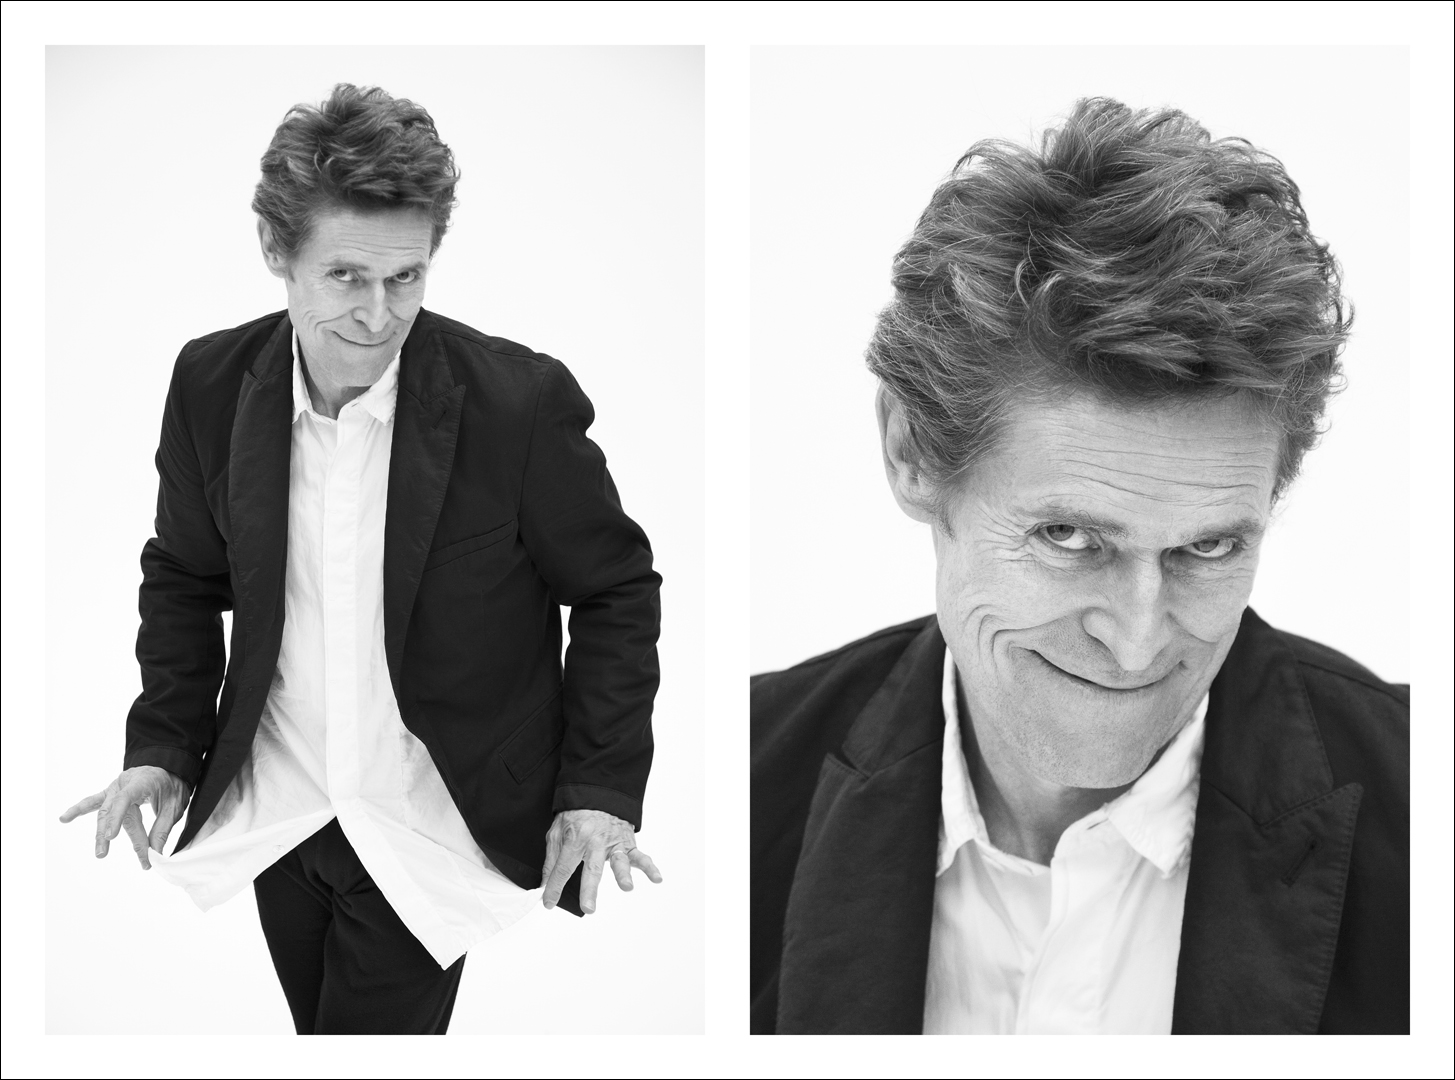 28_TIM_BARBER_WILLEM_DAFOE.jpg